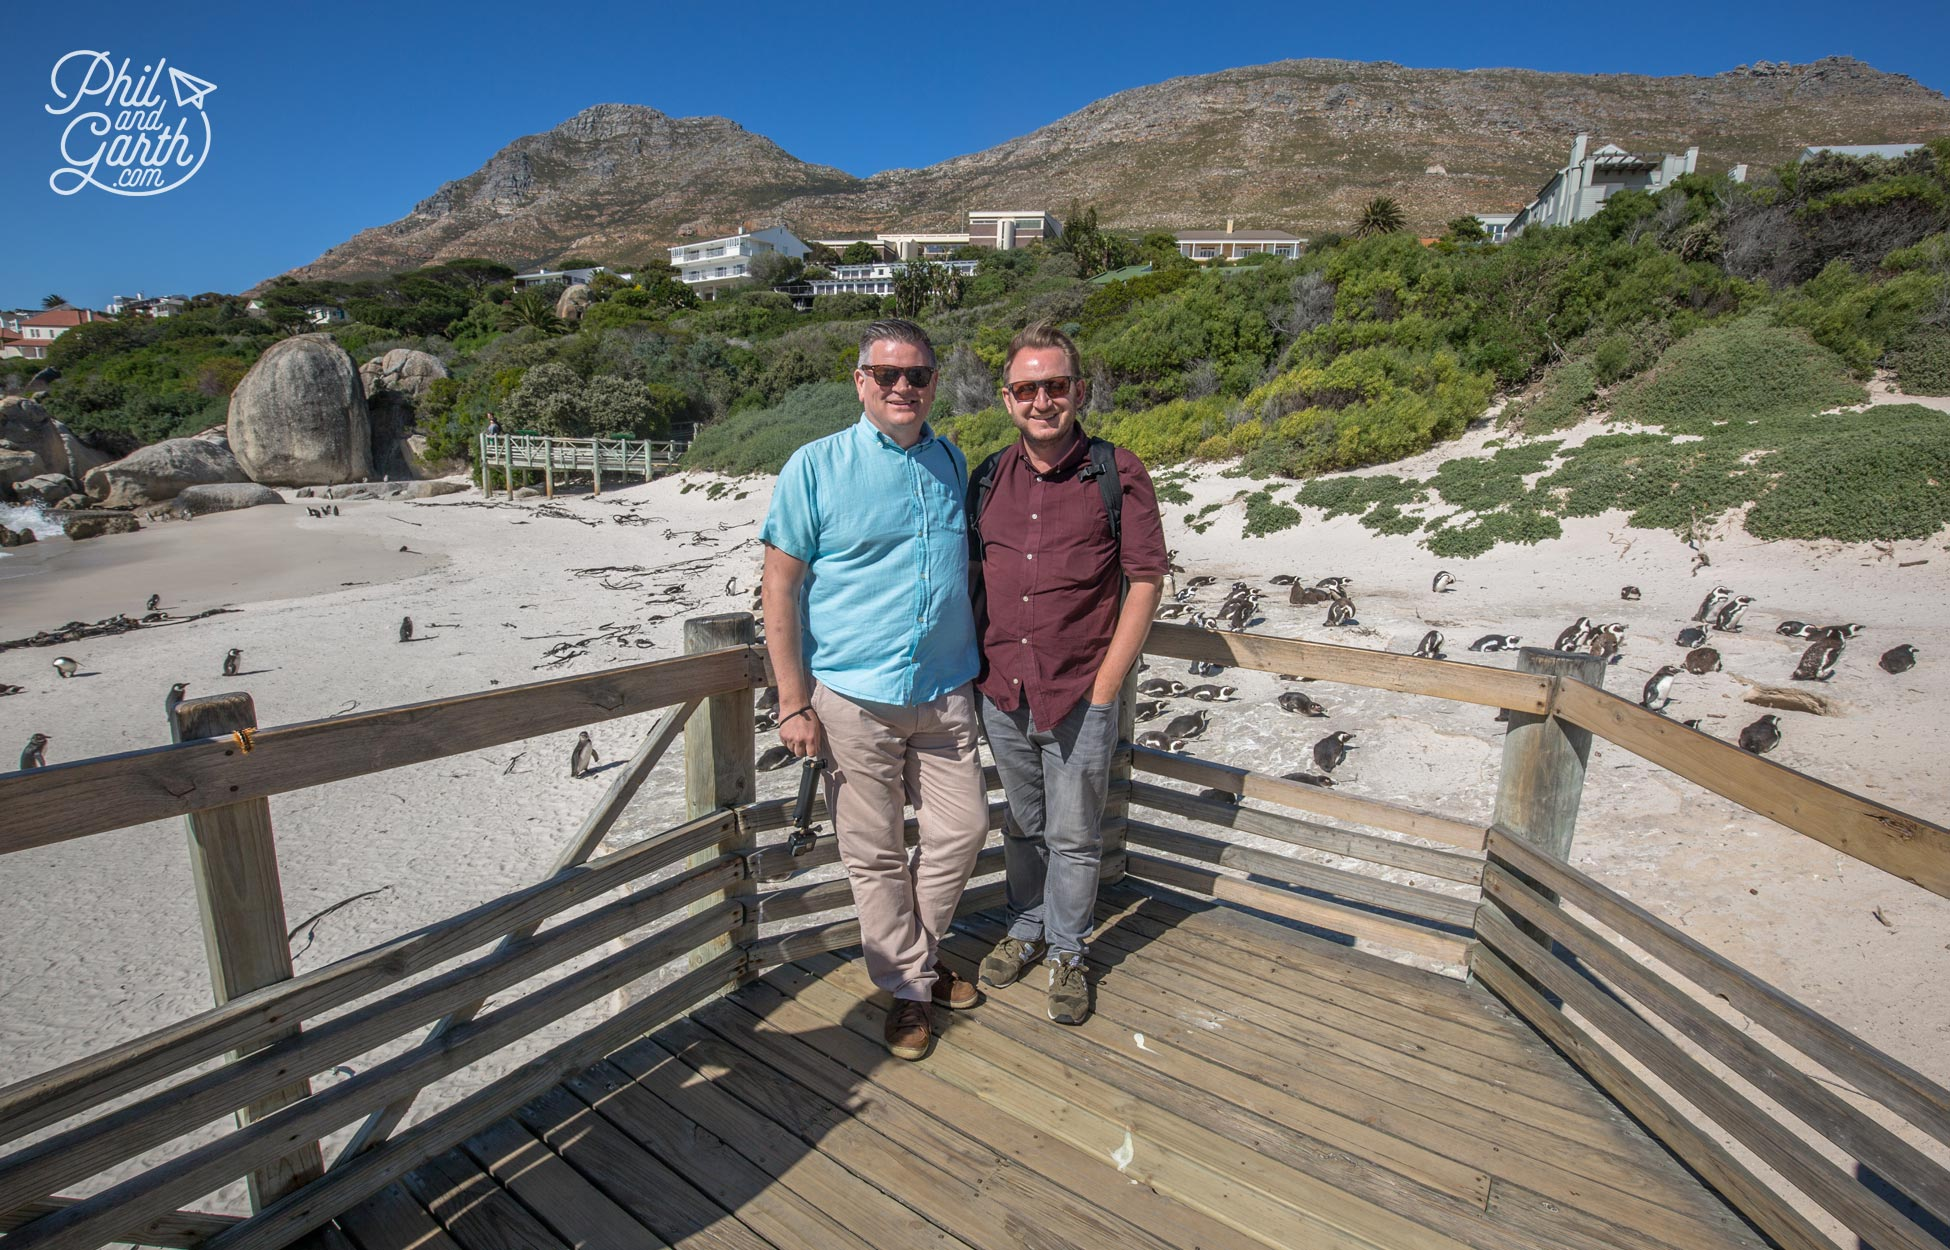 Phil and Garth at Boulders Beach South Africa Highlights Tour